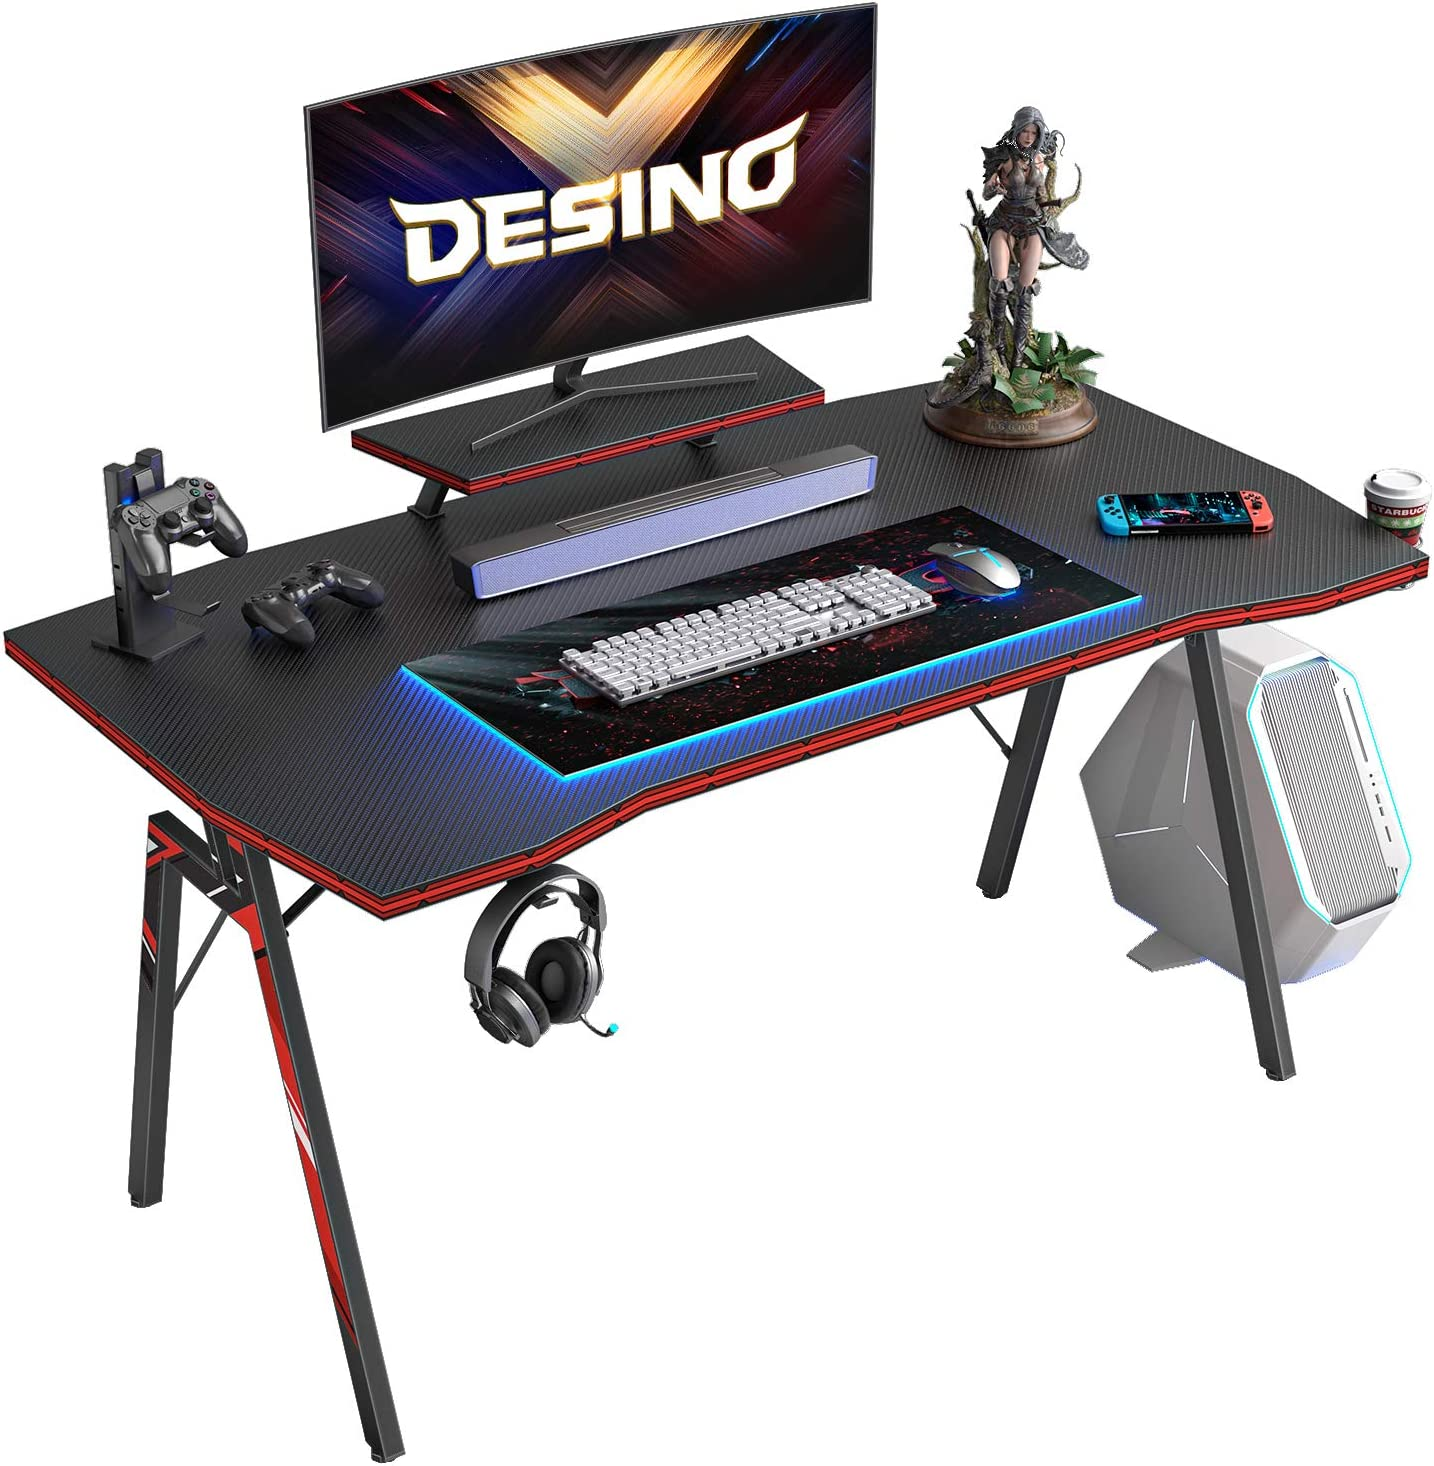 Desino Gaming Desk 40 Inch Pc Computer Desk Home Office Desk Table Gamer Workstation With Cup Holder And Headphone Hook Black Amazon Co Uk Home Kitchen